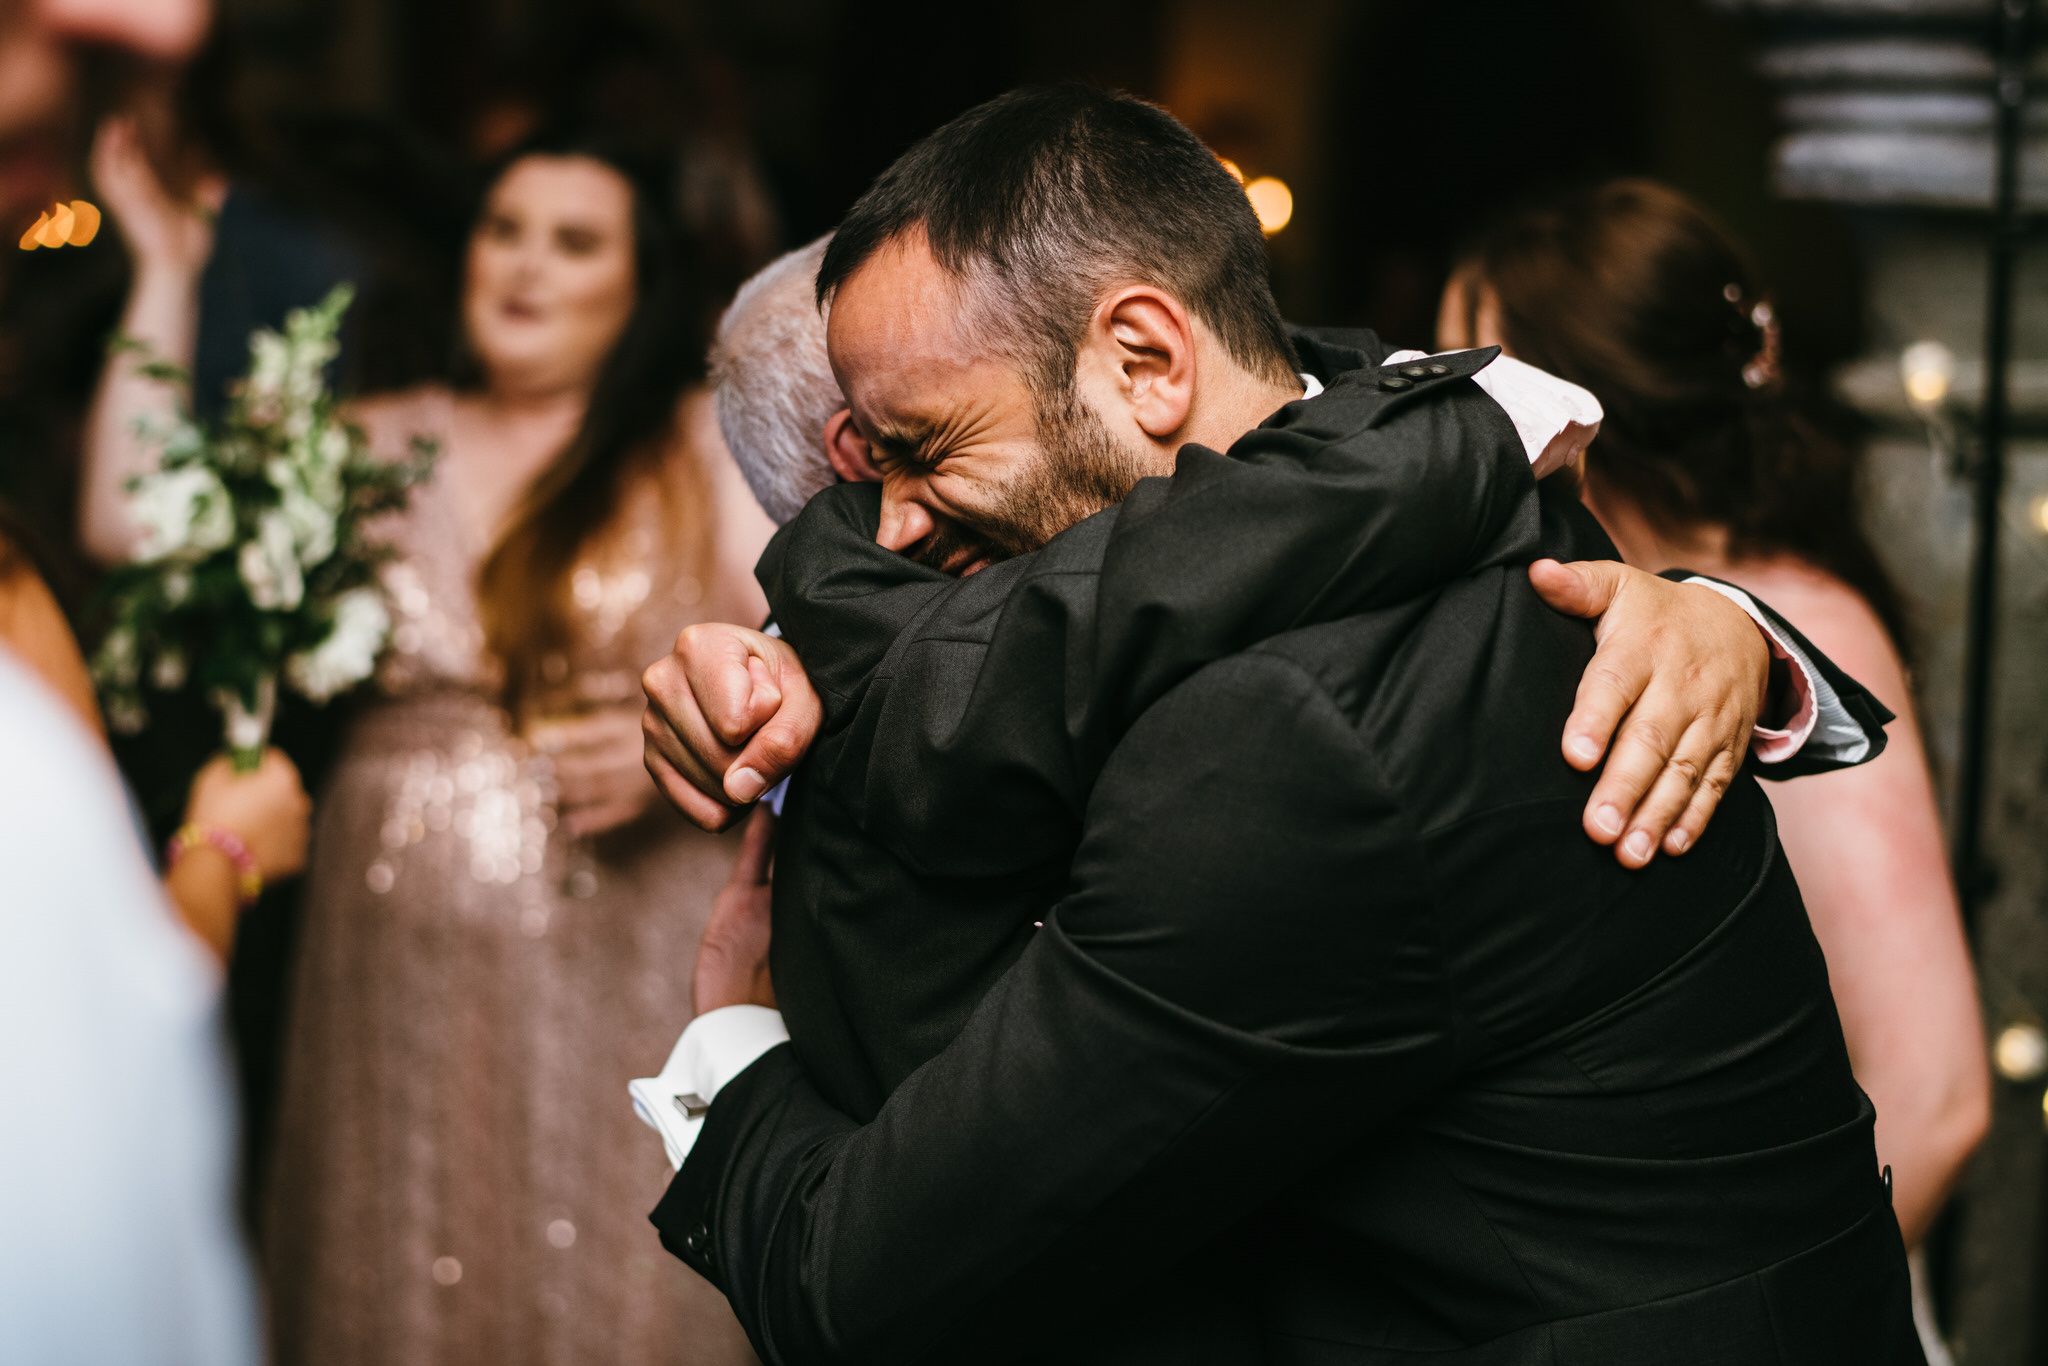 Emotional Groom hugging father tight